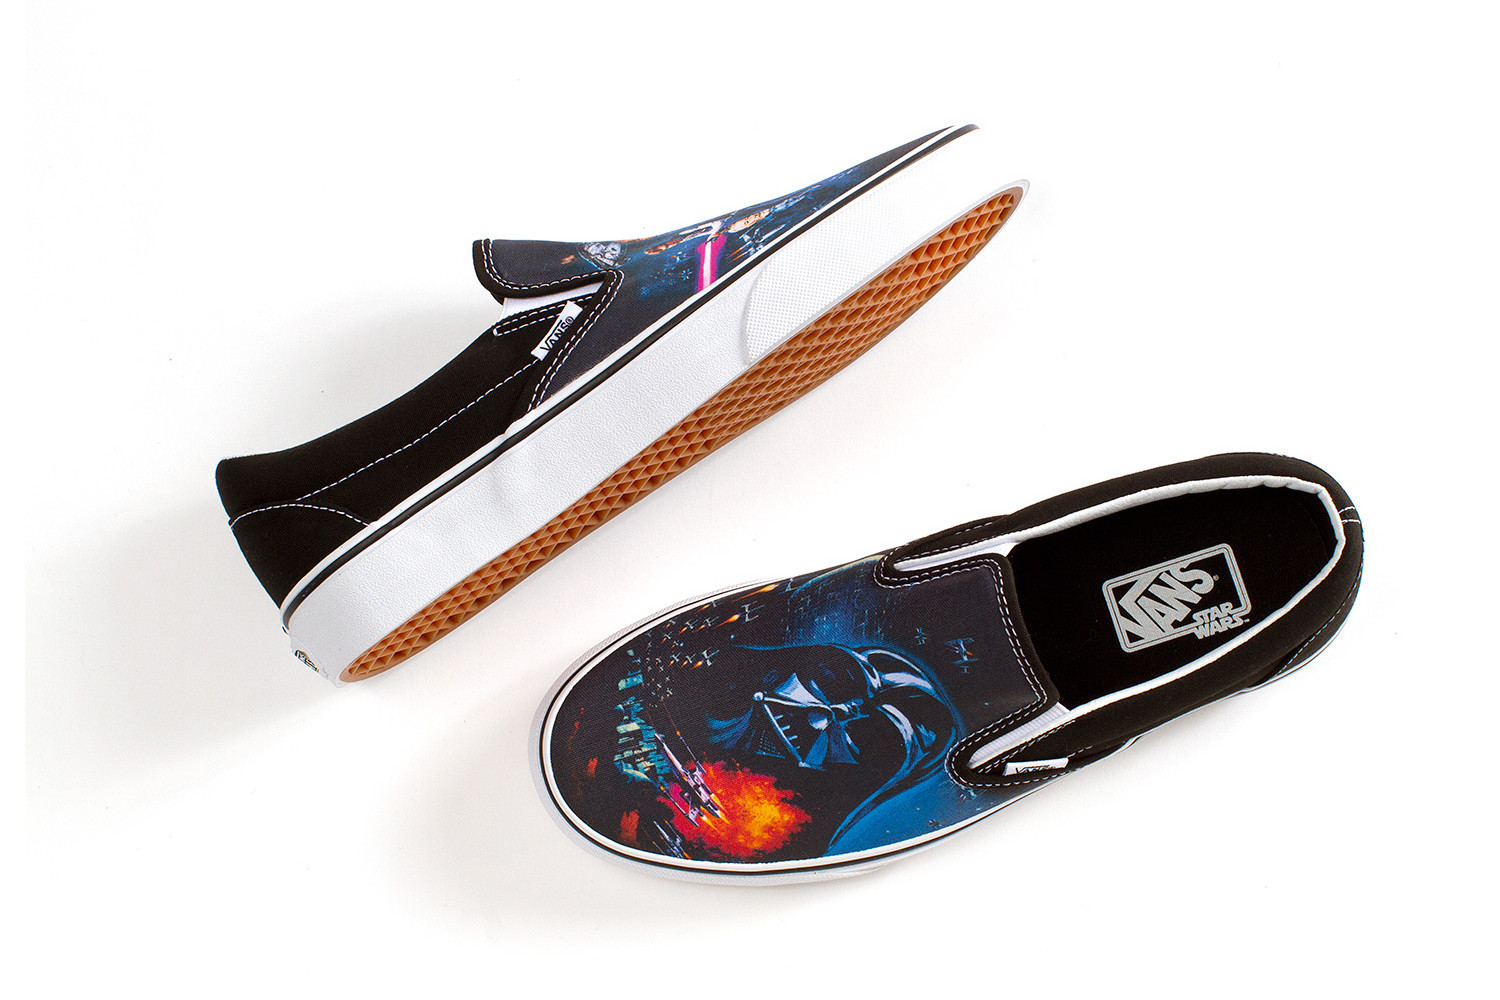 Vans X  Star Wars  collection - La Jolla Light f6d3a4c72e